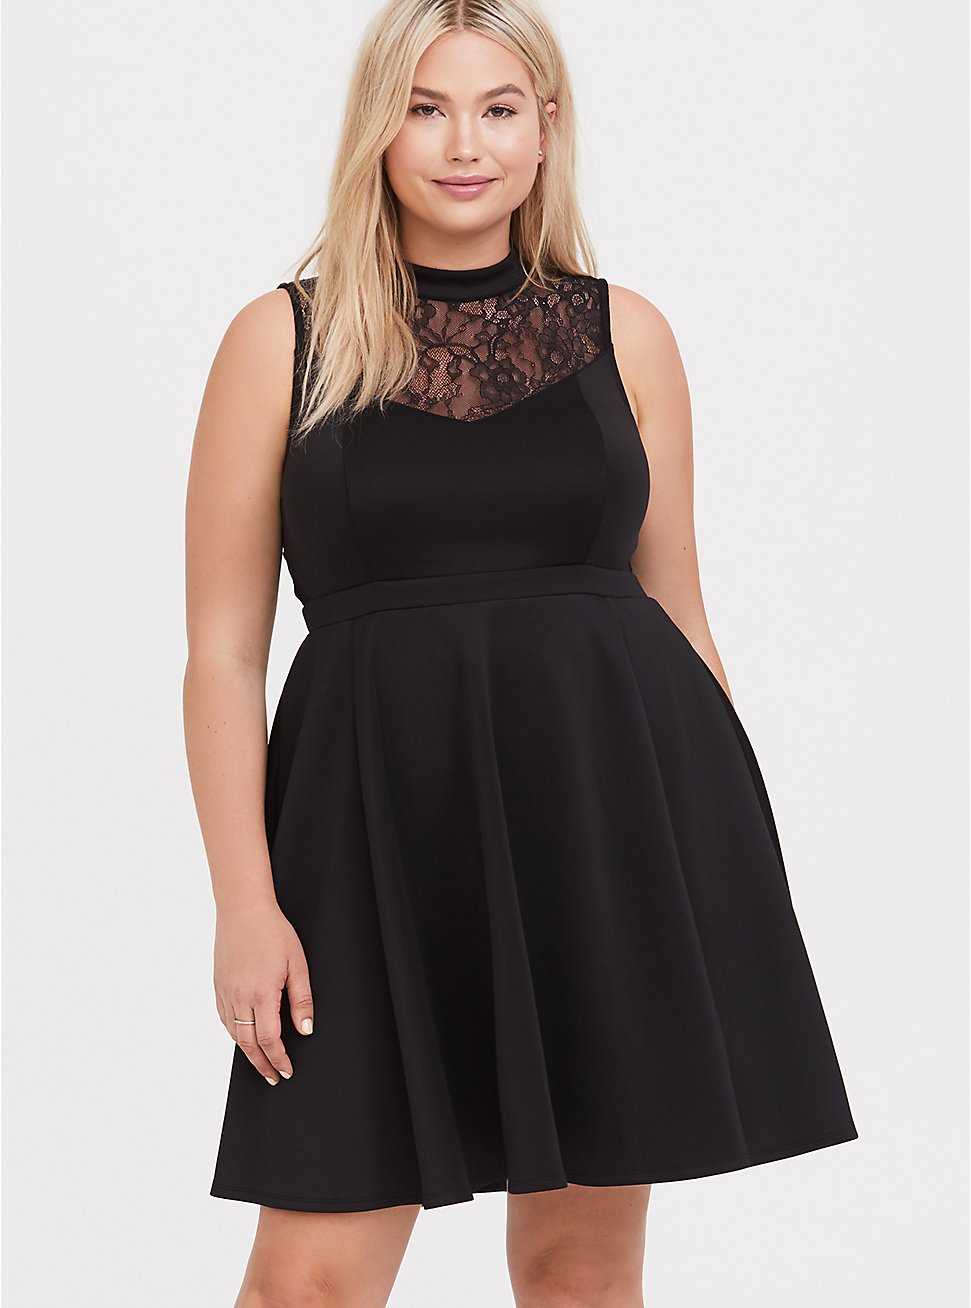 Black Scuba Knit & Lace Skater Dress, DEEP BLACK, hi-res